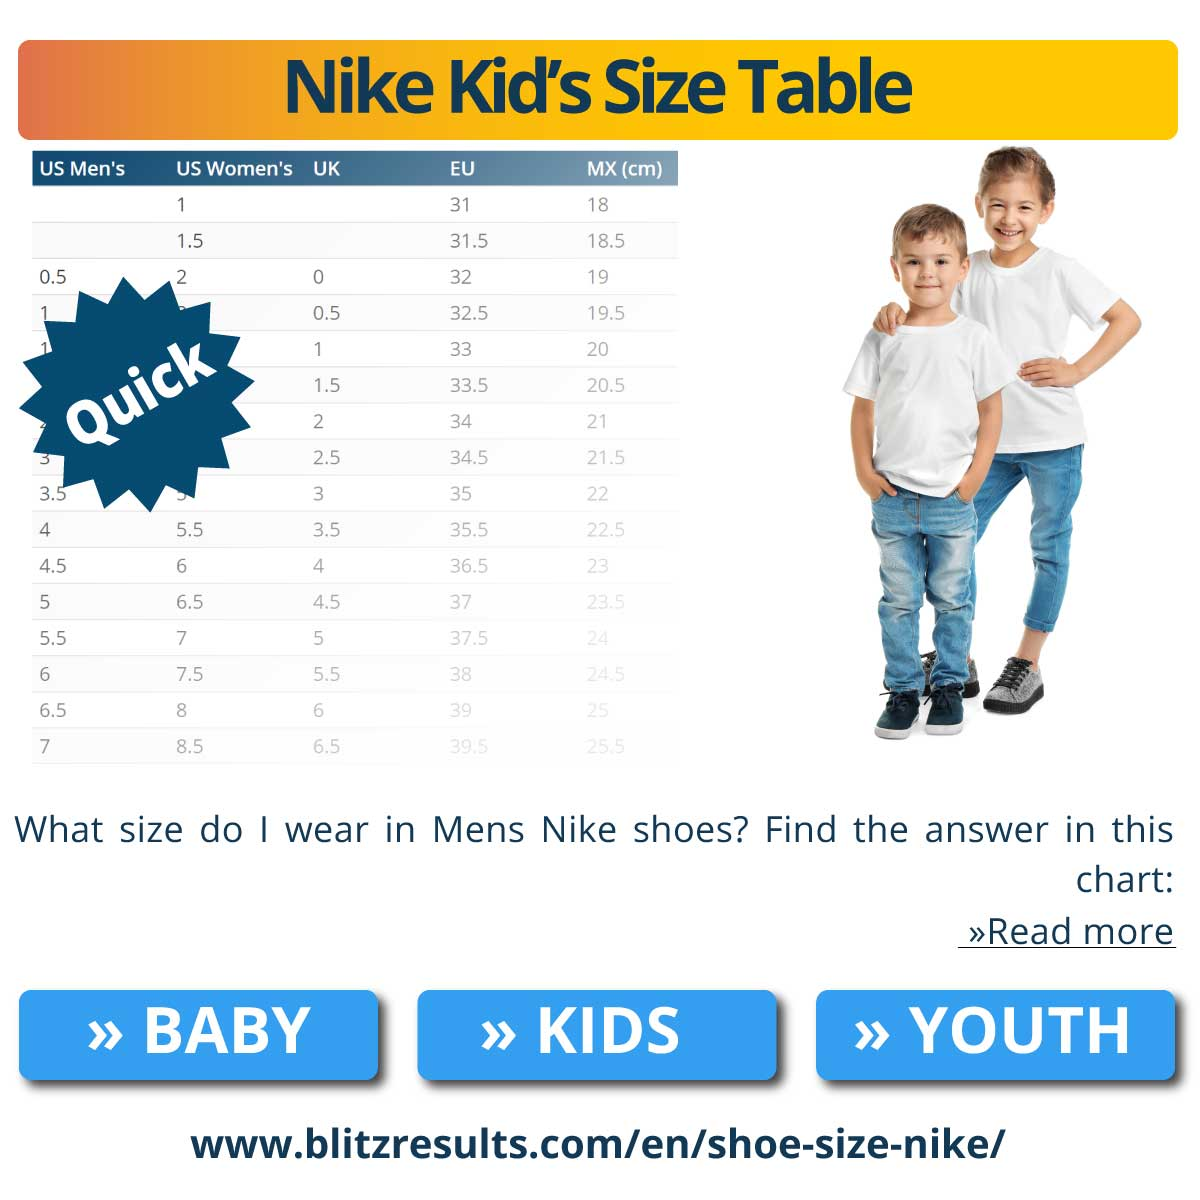 Nike Kid's Size Table